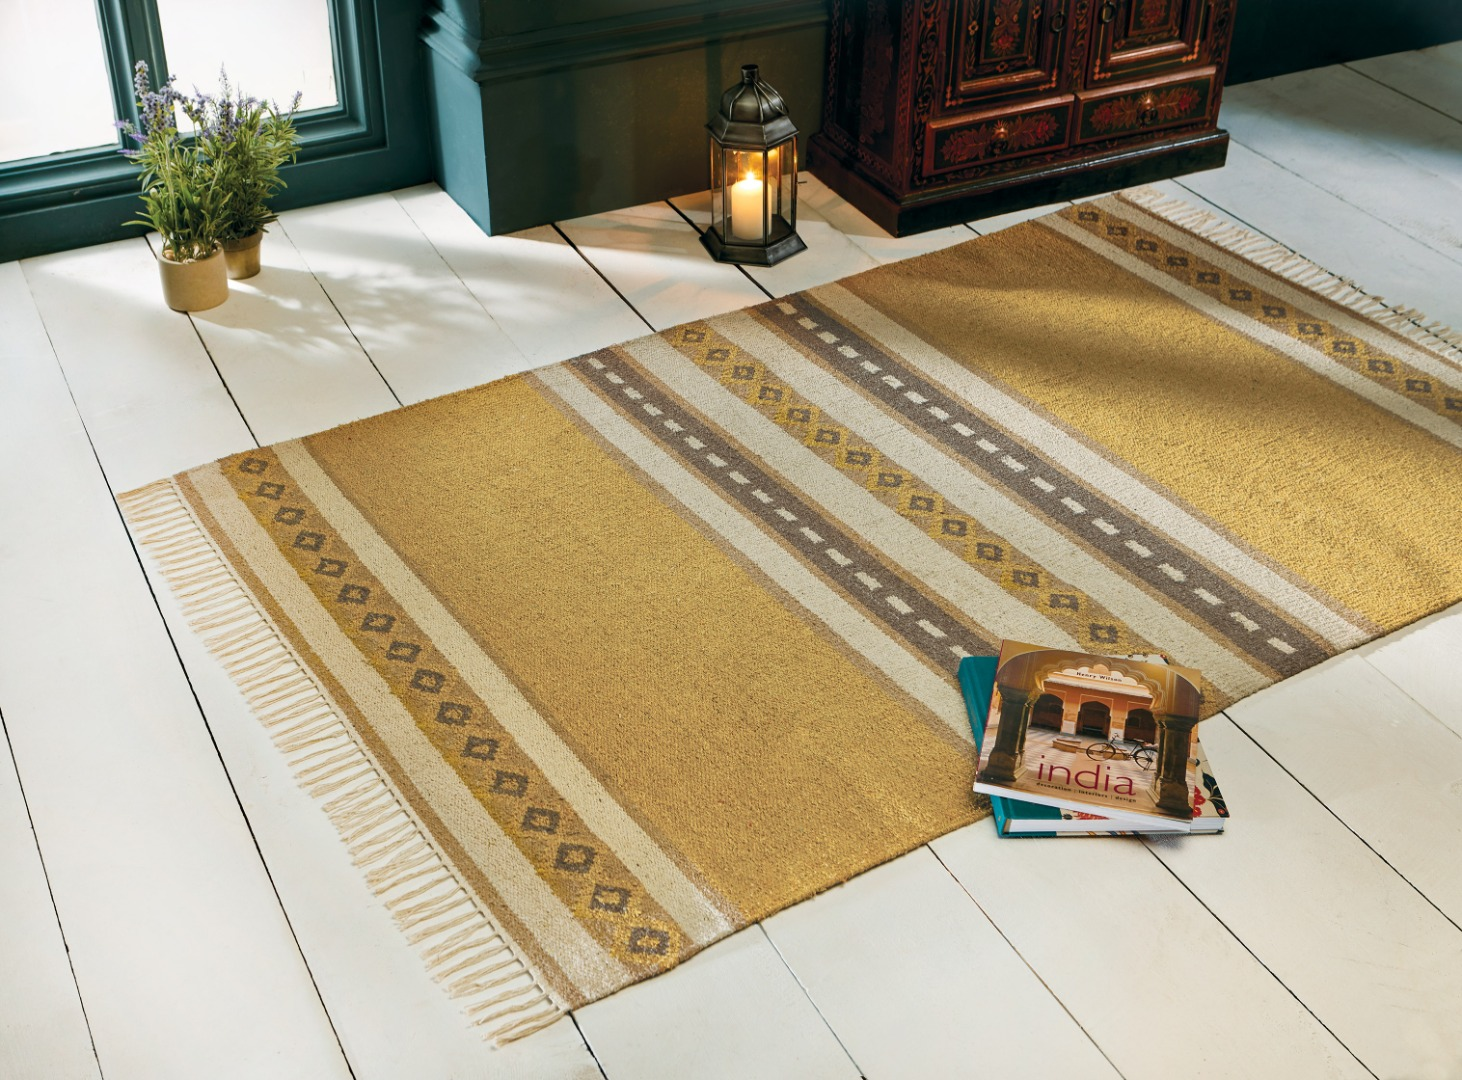 Fair Trade Indian Yellow and Brown Patterned Recycled Cotton Flat Weave Rug